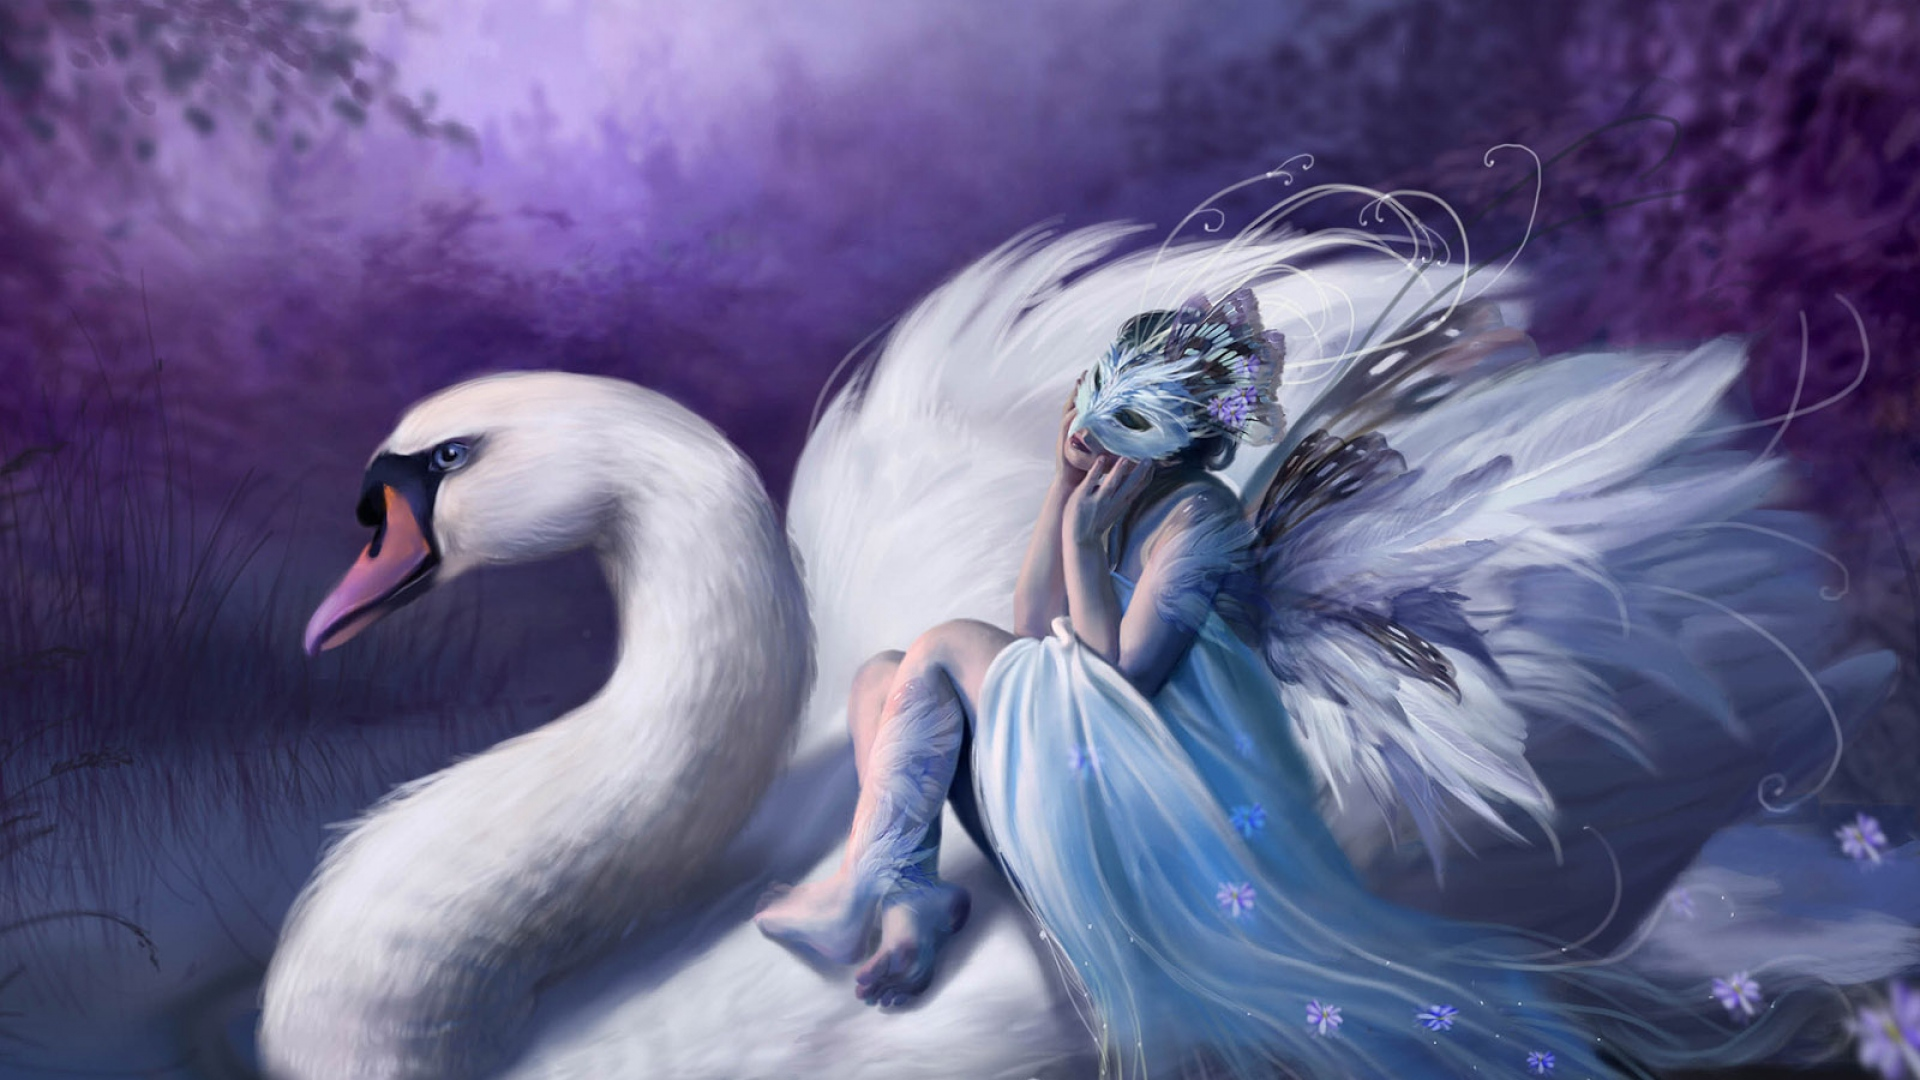 girl-swan-mask-lake-1920x1080